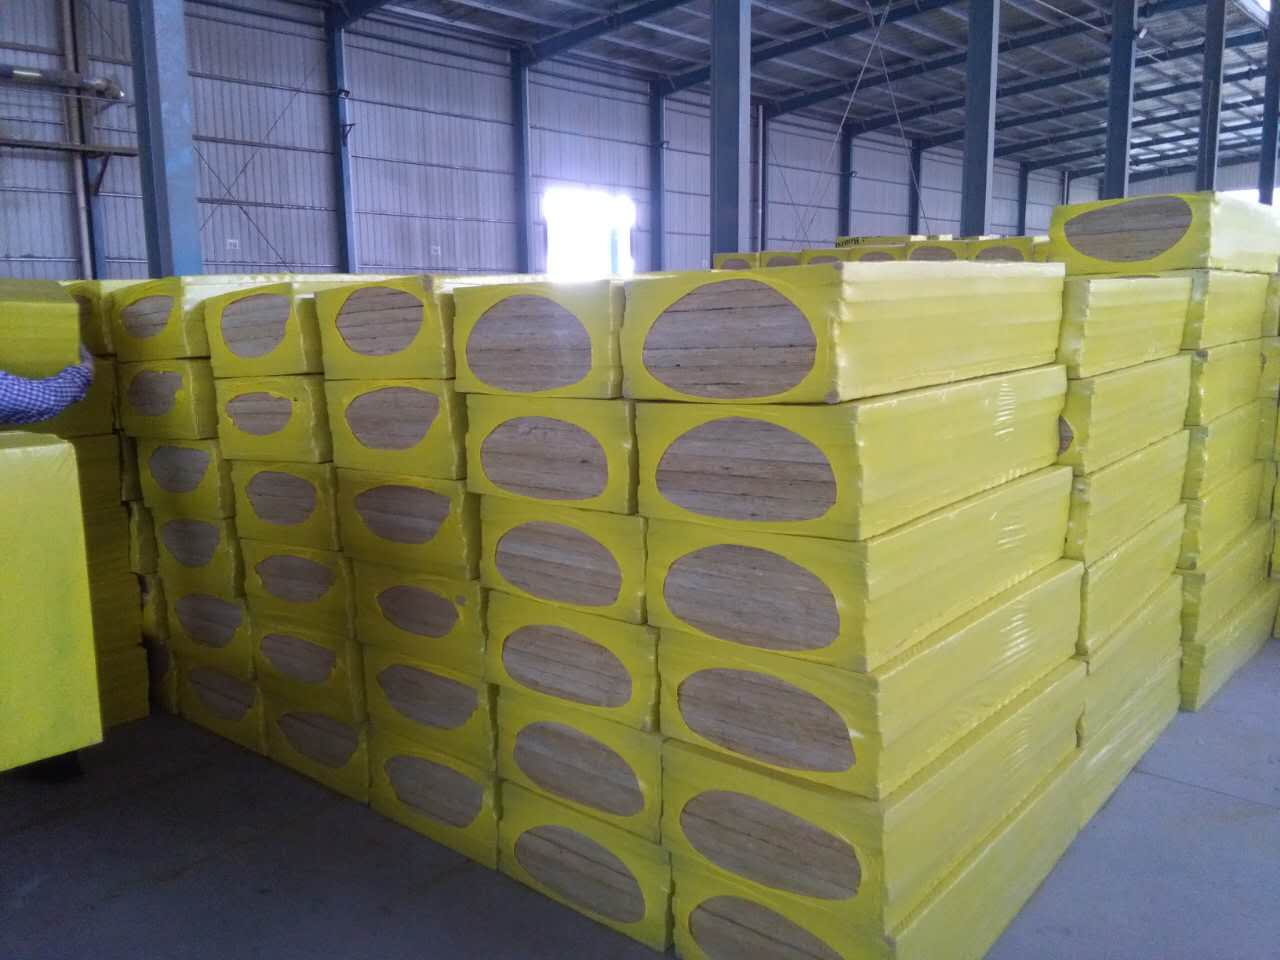 China rock wool board insulation price purchasing souring for Mineral wool board insulation price